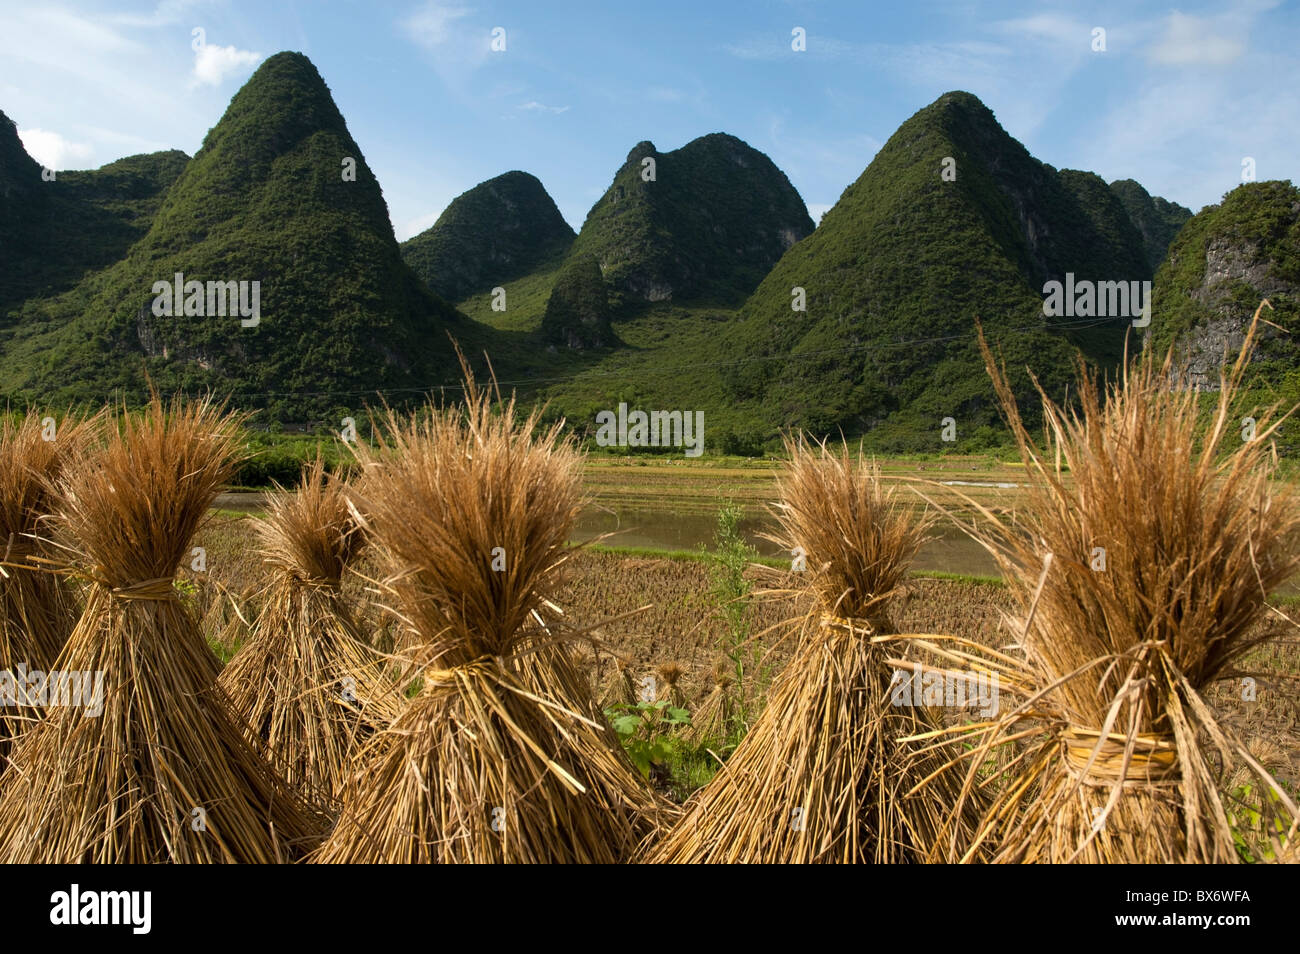 Bundles of rice drying in a paddy field with Karst peaks behind in Yangshuo County, Guangxi Province, China. - Stock Image